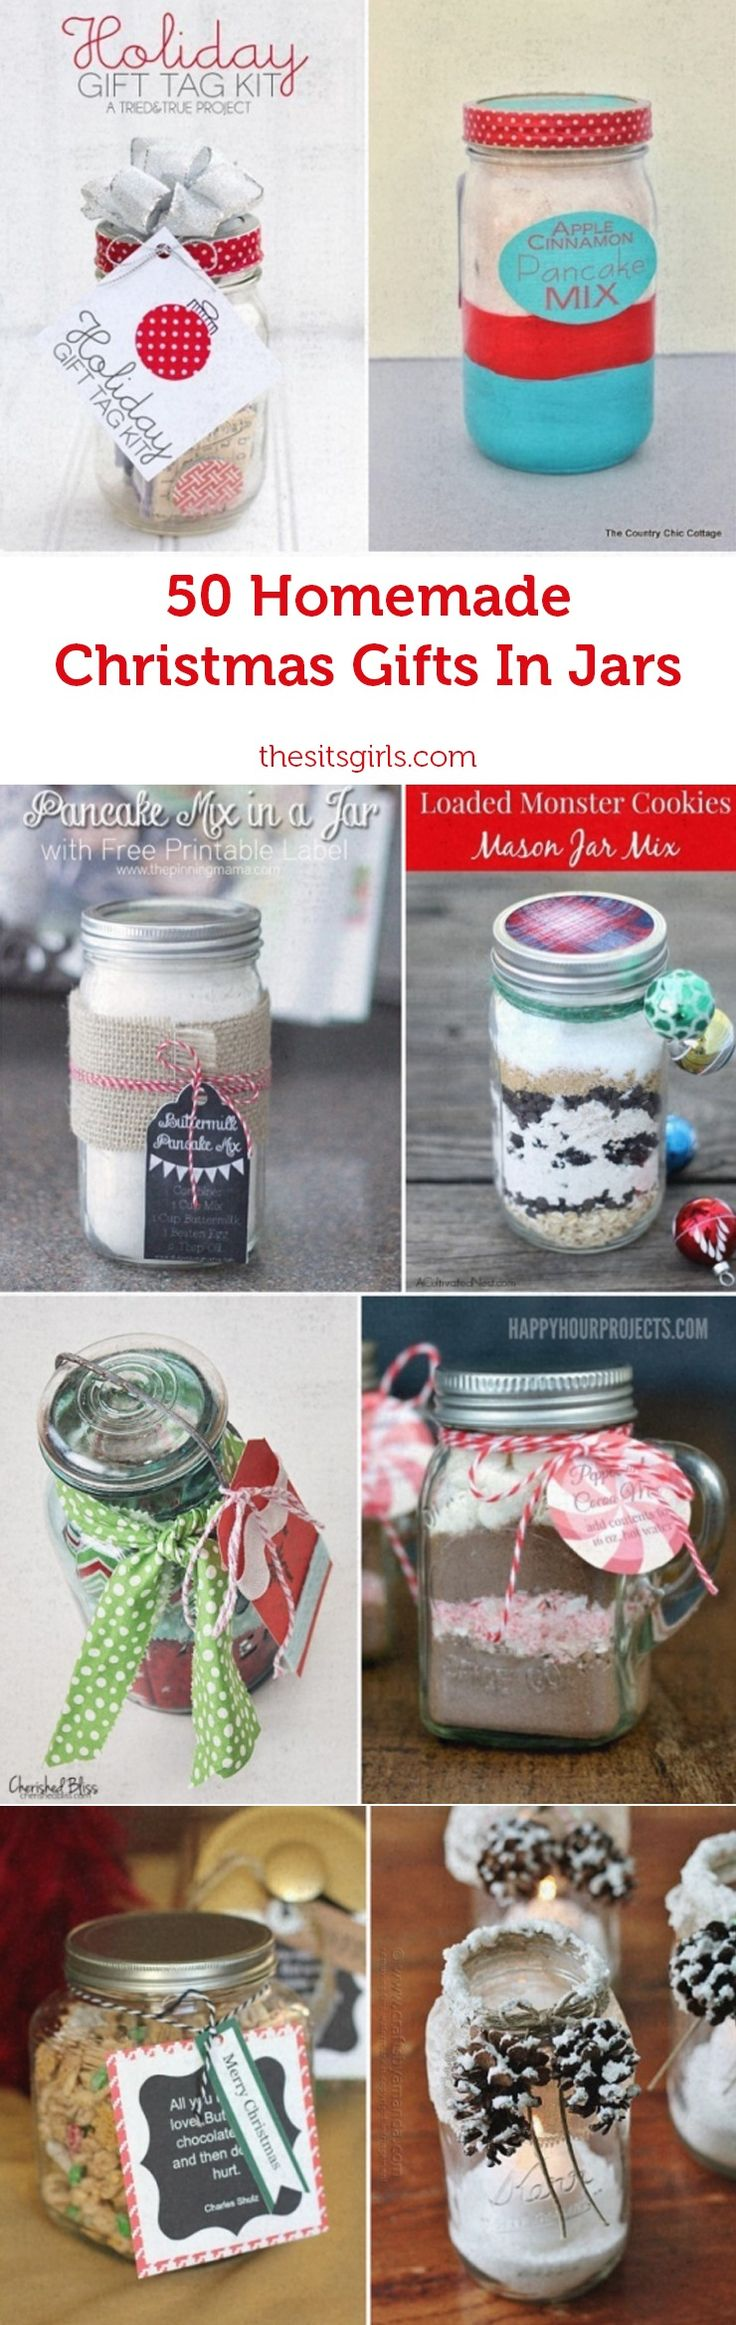 best 25 gifts in jars ideas on pinterest gift jars inexpensive